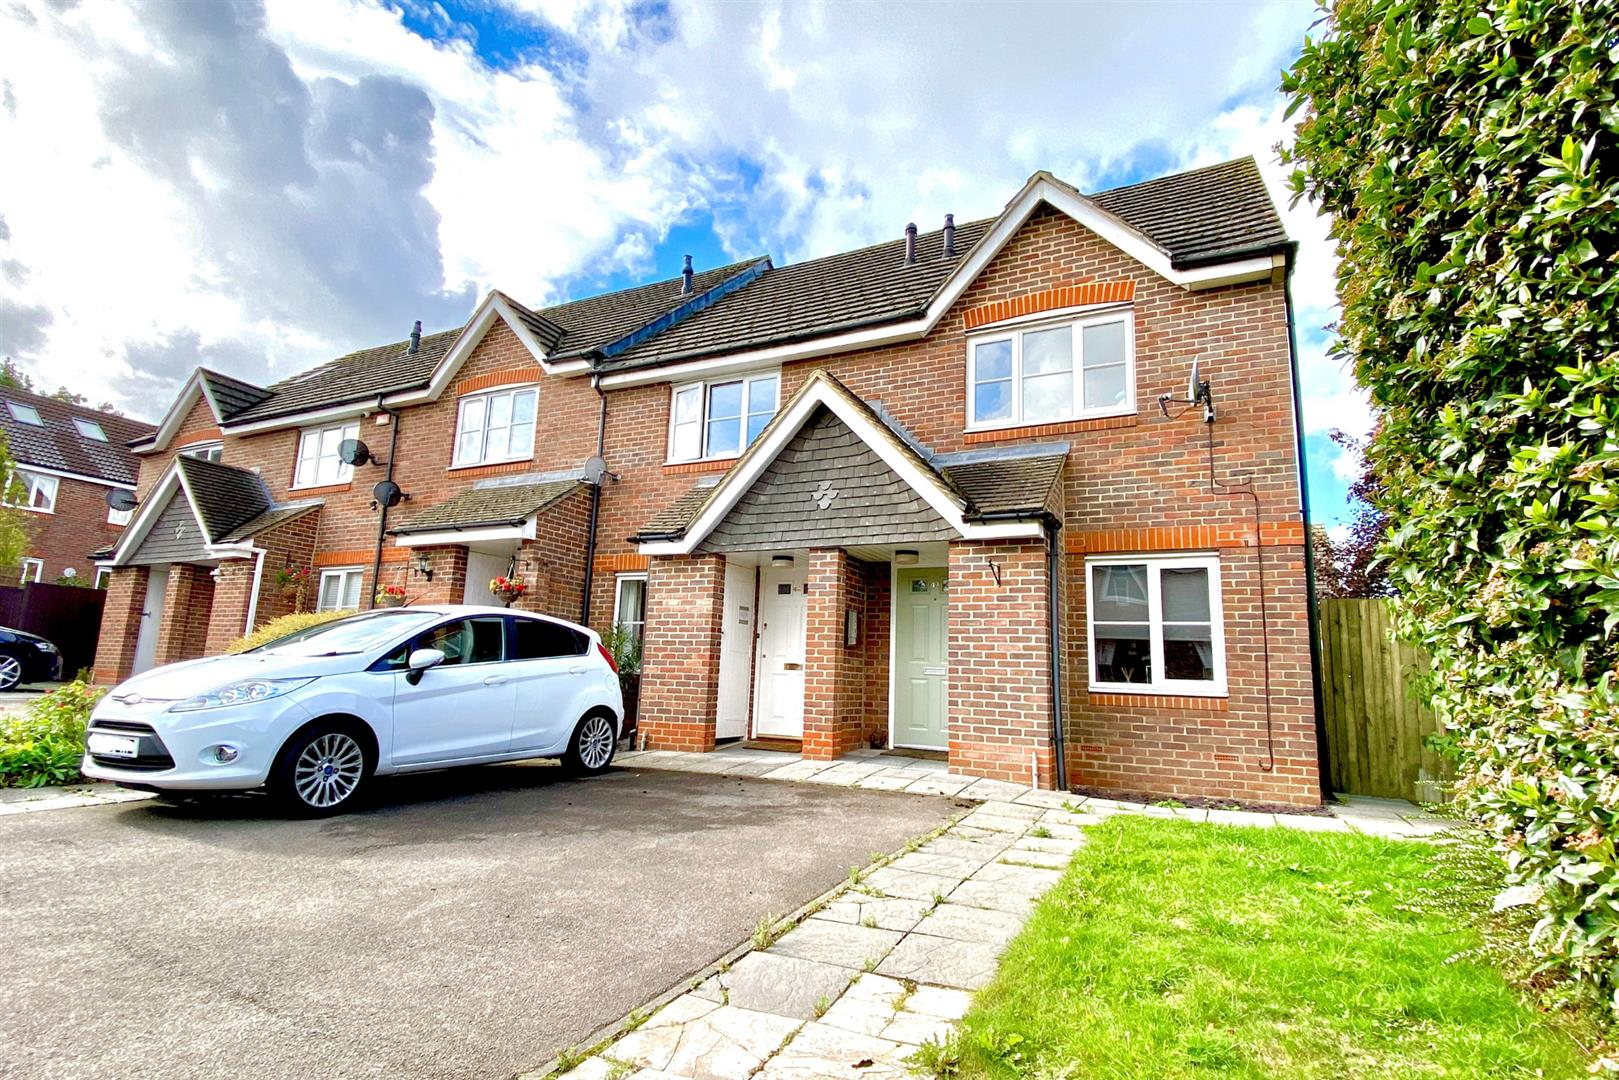 2 bed end of terrace for sale in Three Mile Cross - Property Image 1